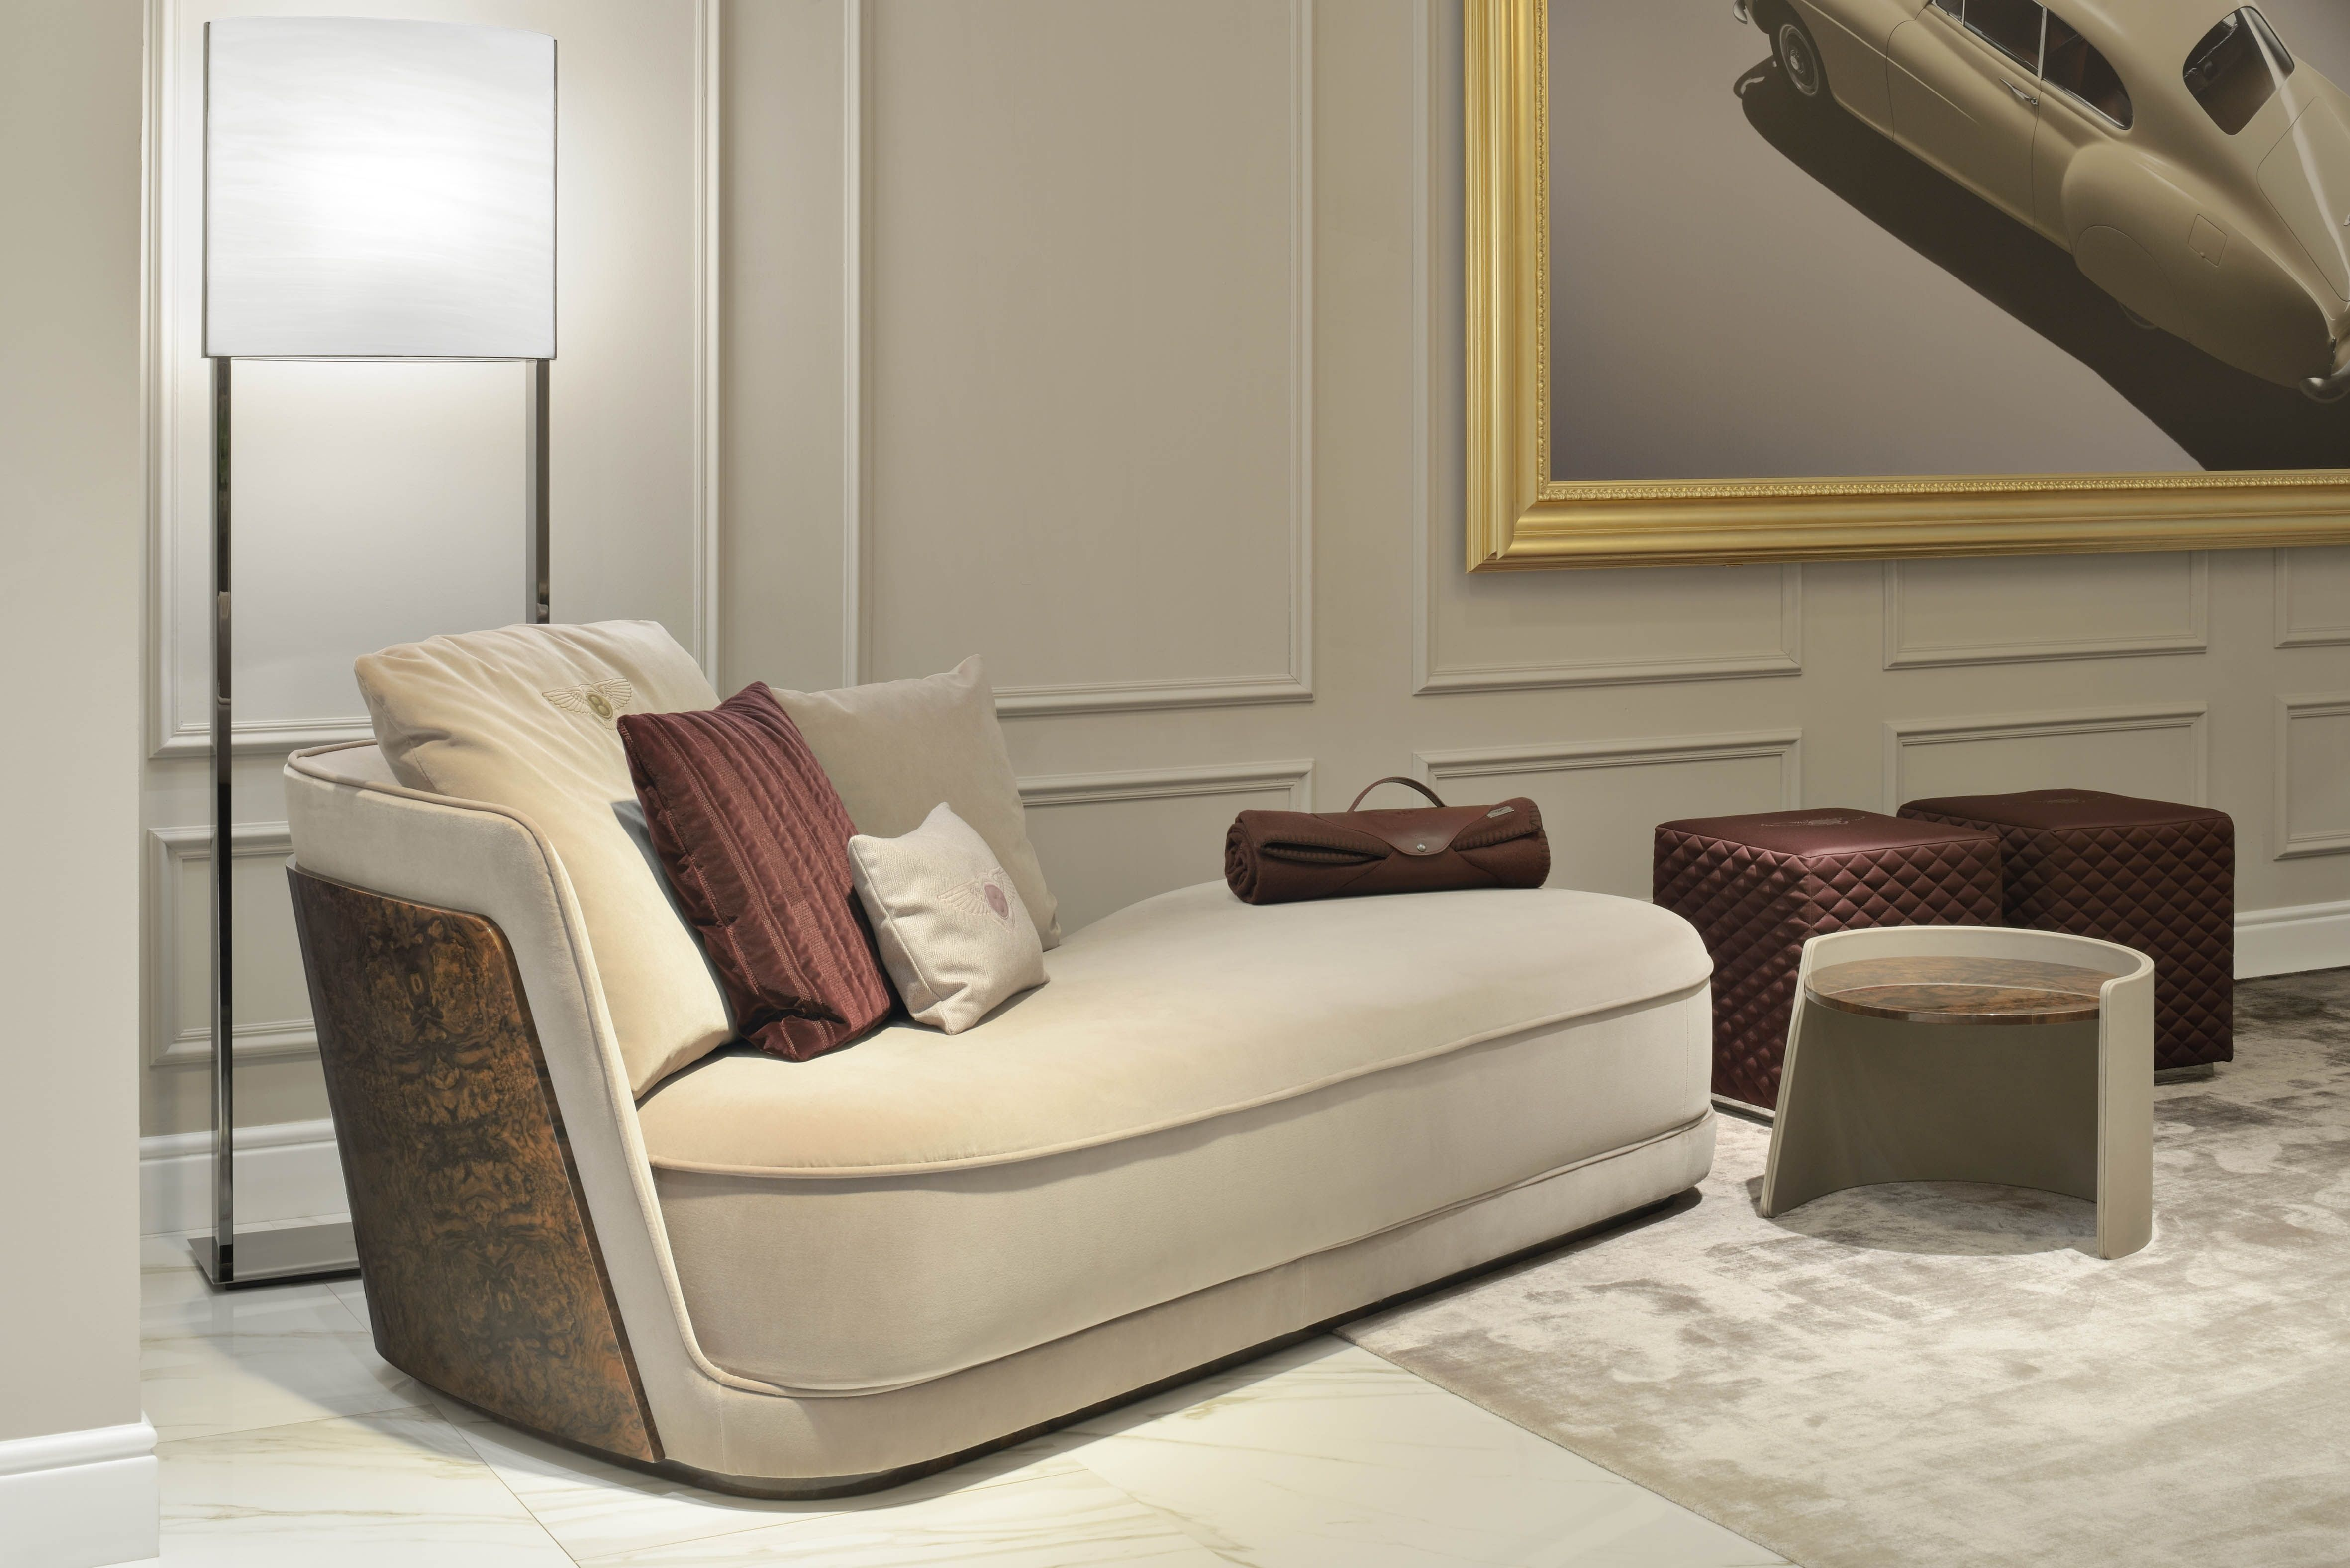 Bentley Richmond Chaise Longue Classic Bedroom Furniture Luxury Living Room Design Modern Sofa Designs